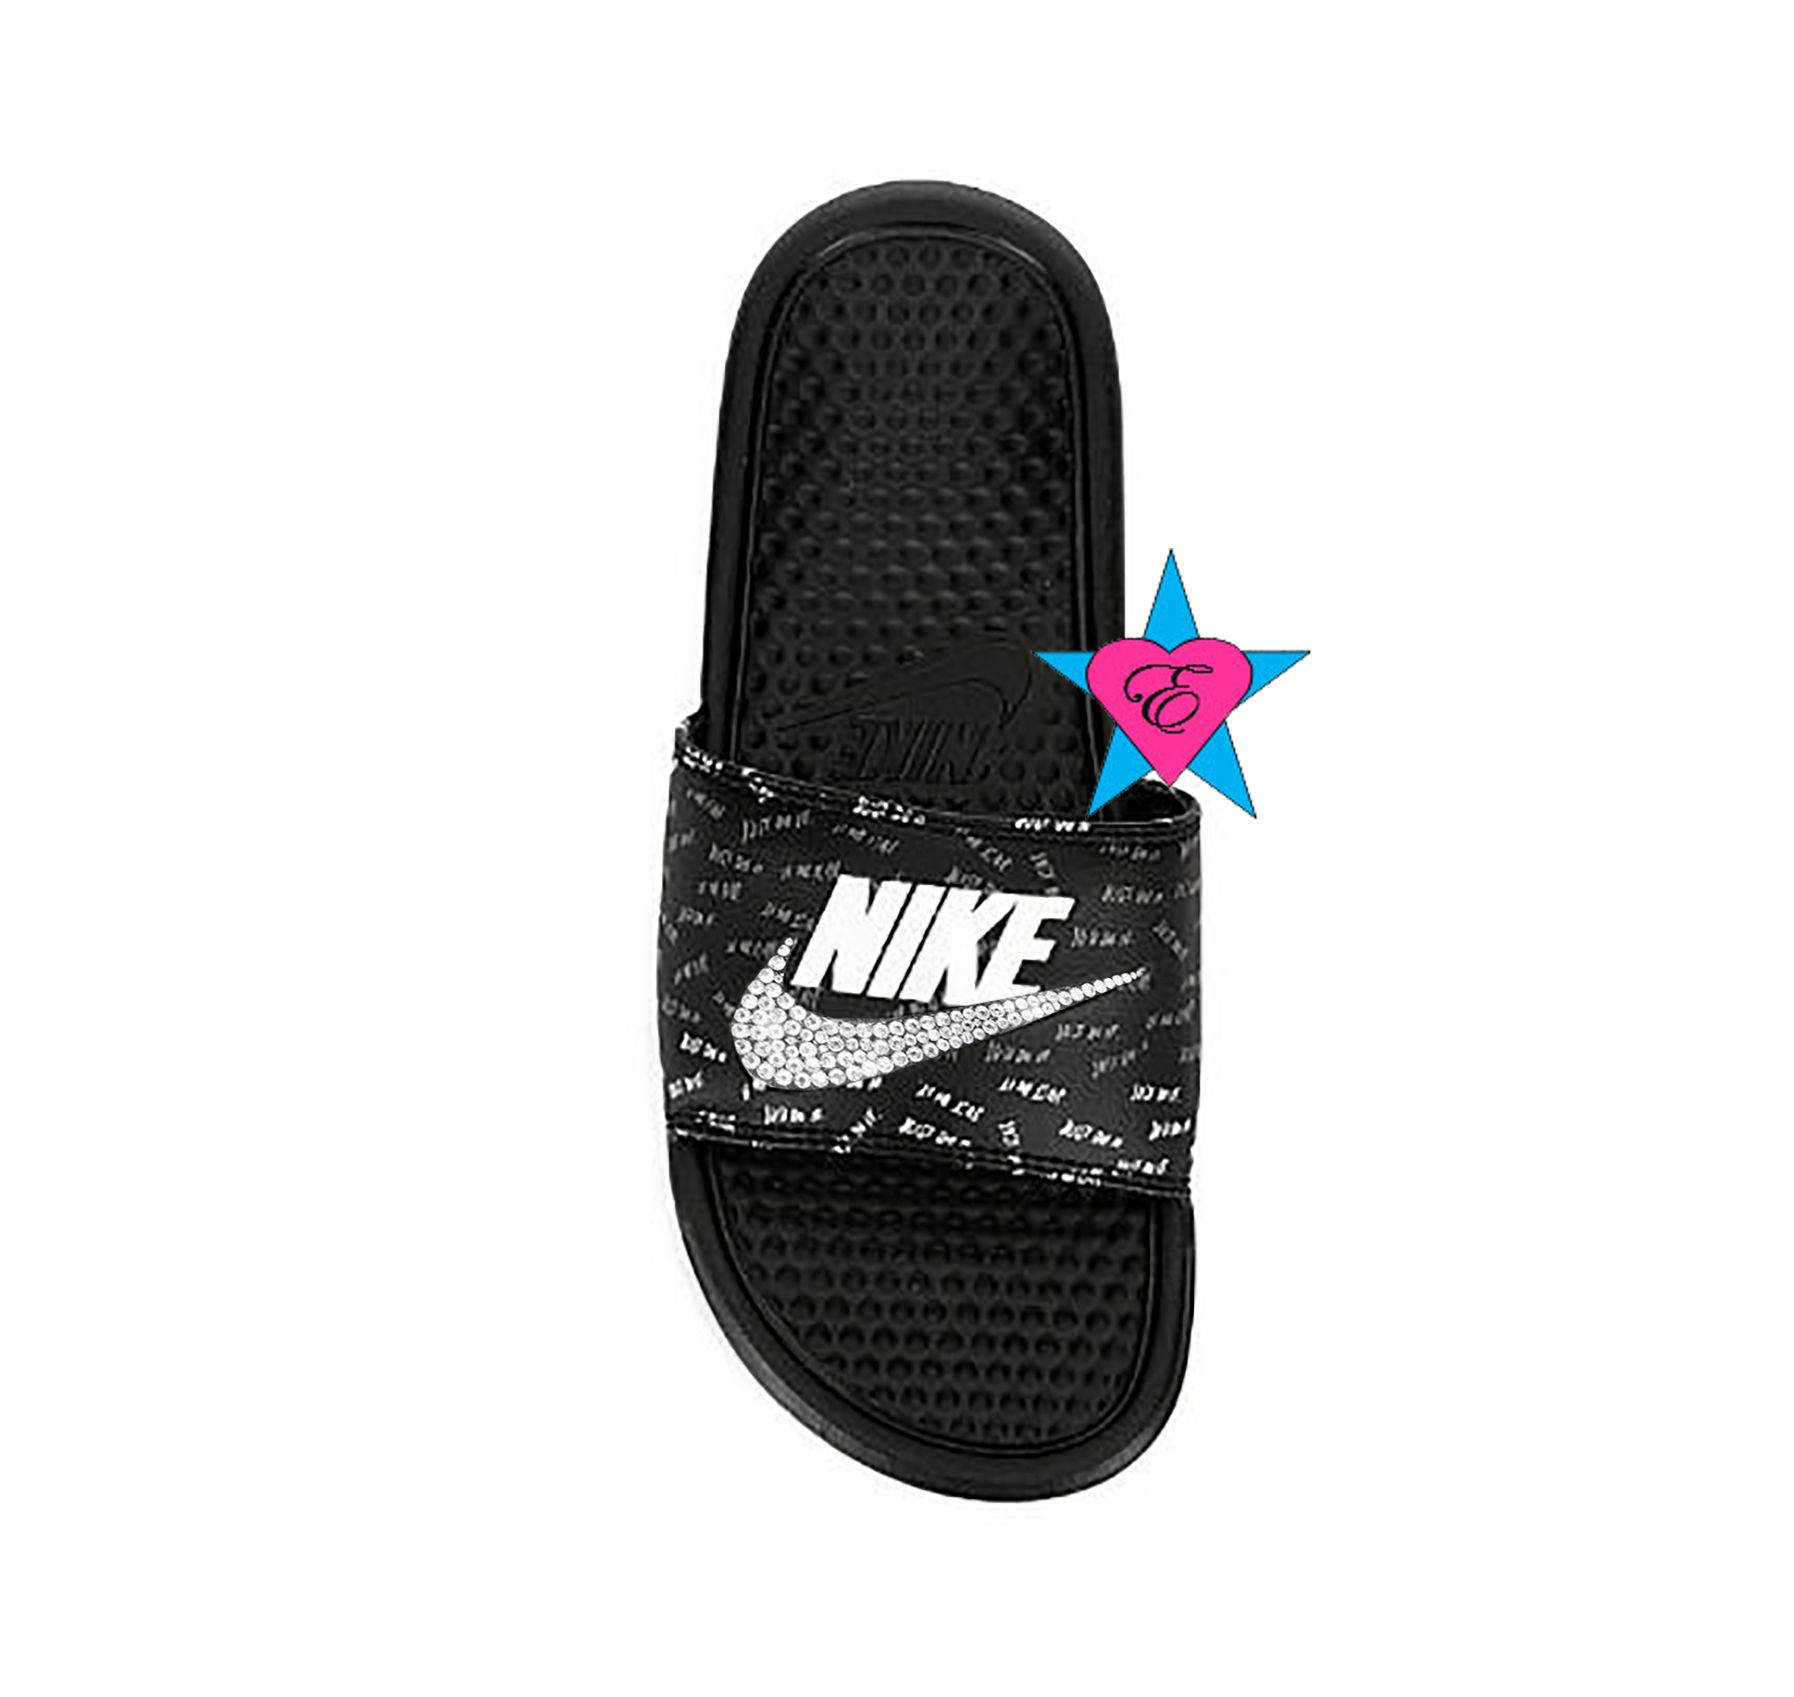 821a7b627b5 Bedazzled Glitter Just Do It Black Nike Benassi JDI Print Sport Slides with  Crystal Swoosh sold on Amazon in the Handmade section.